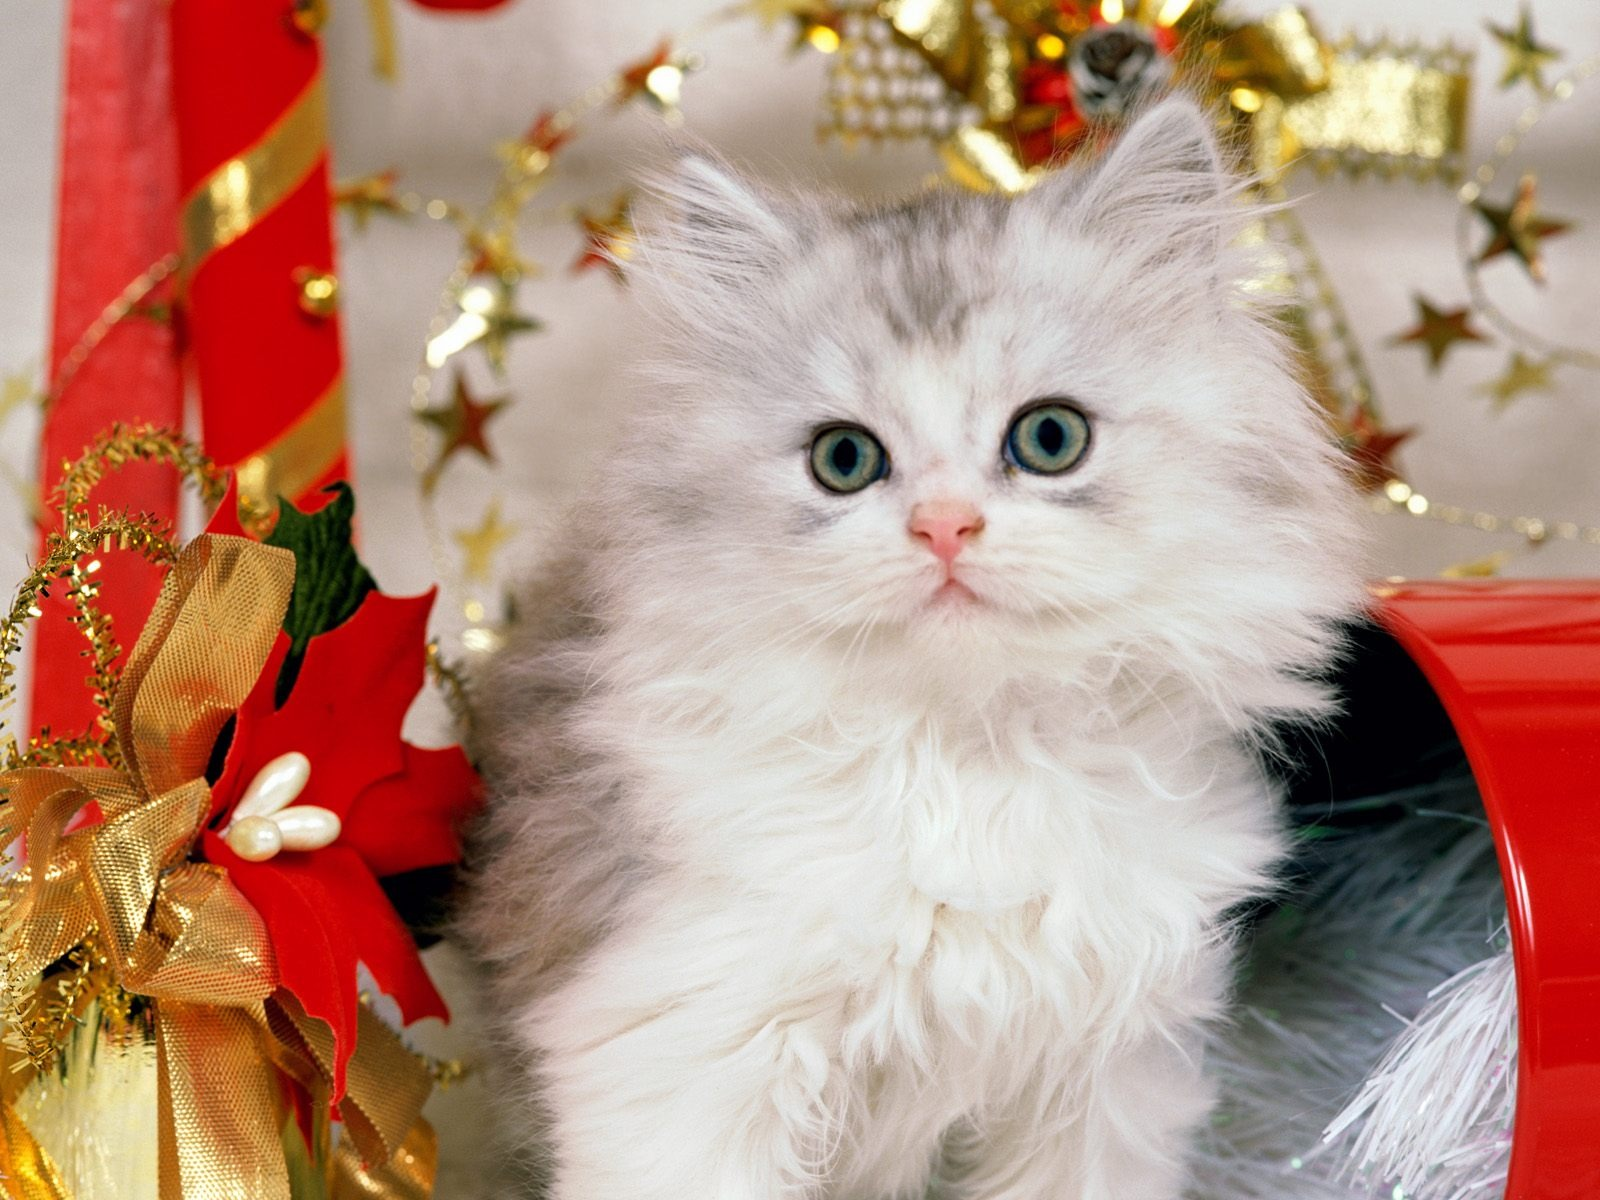 cute kitty wallpaper cats animals wallpapers in jpg format for